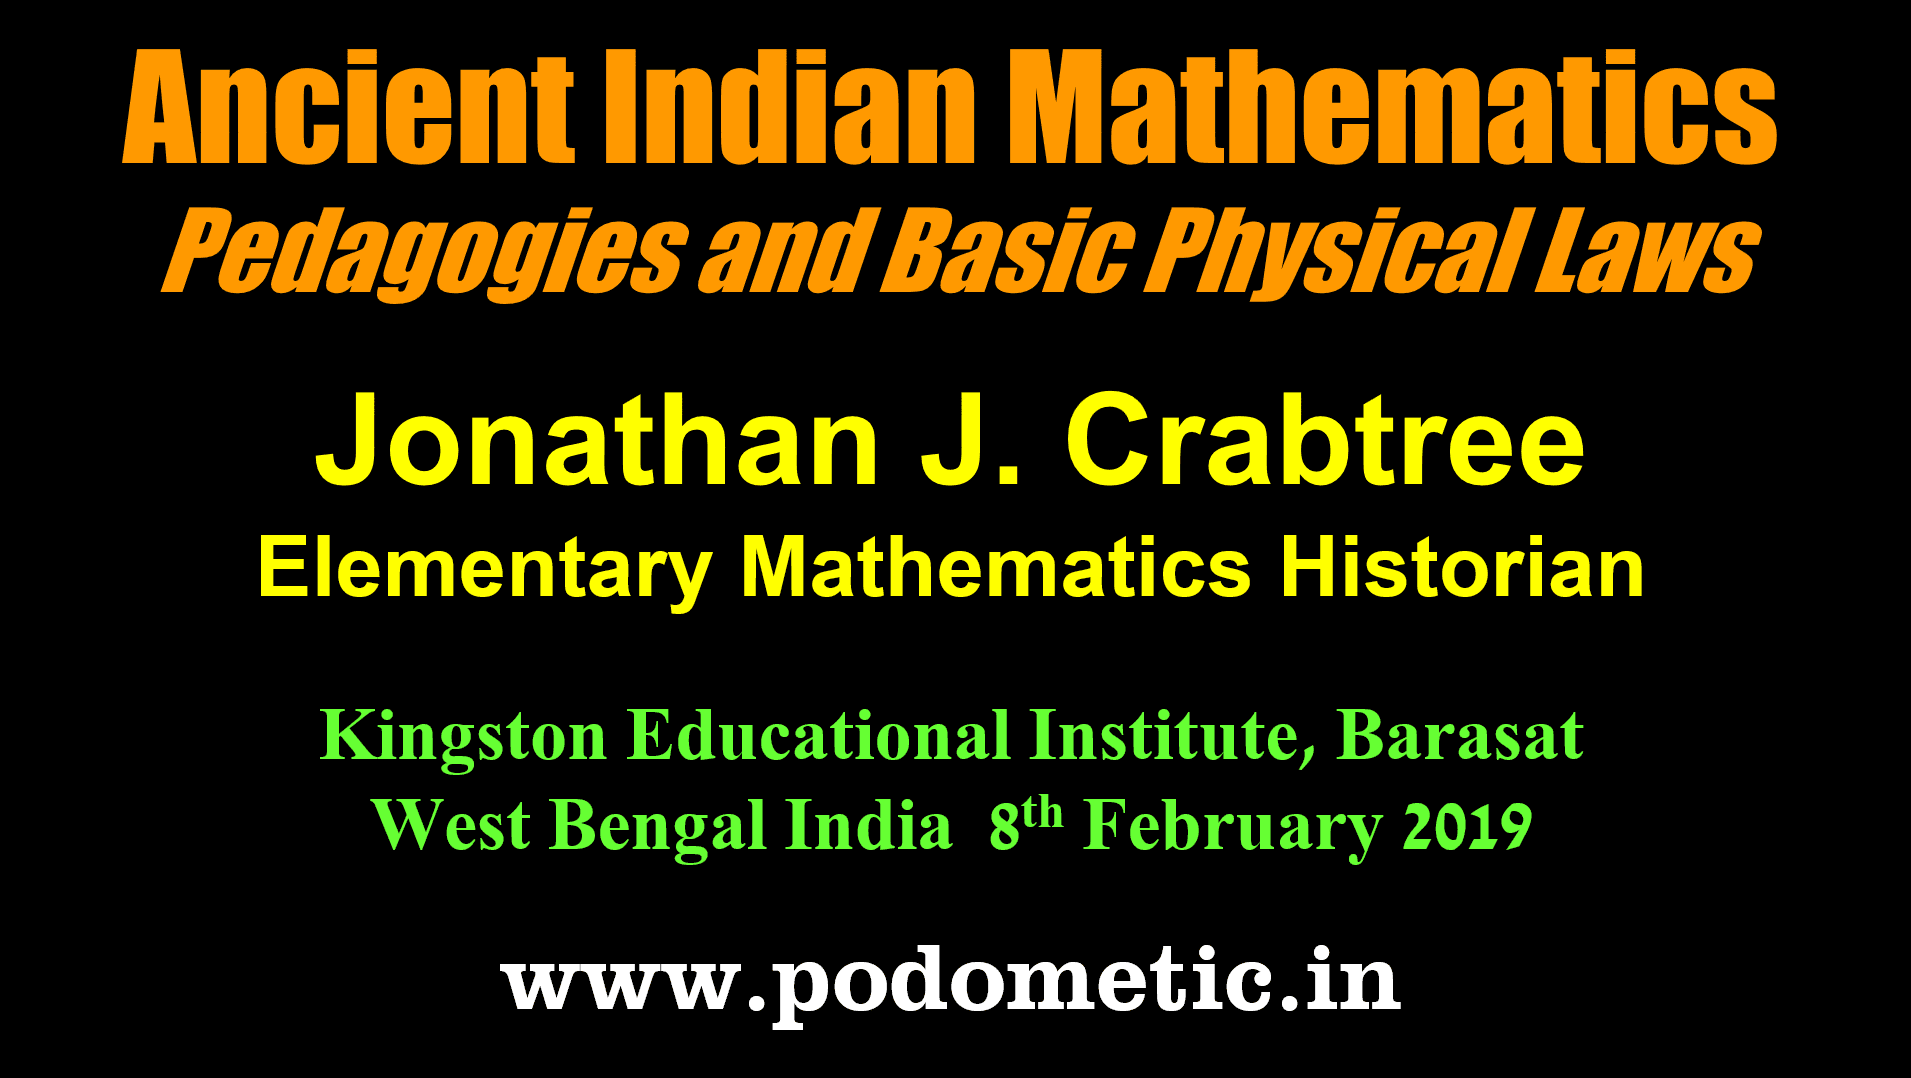 Ancient Indian Mathematics Pedagogies and Basic Physical Laws